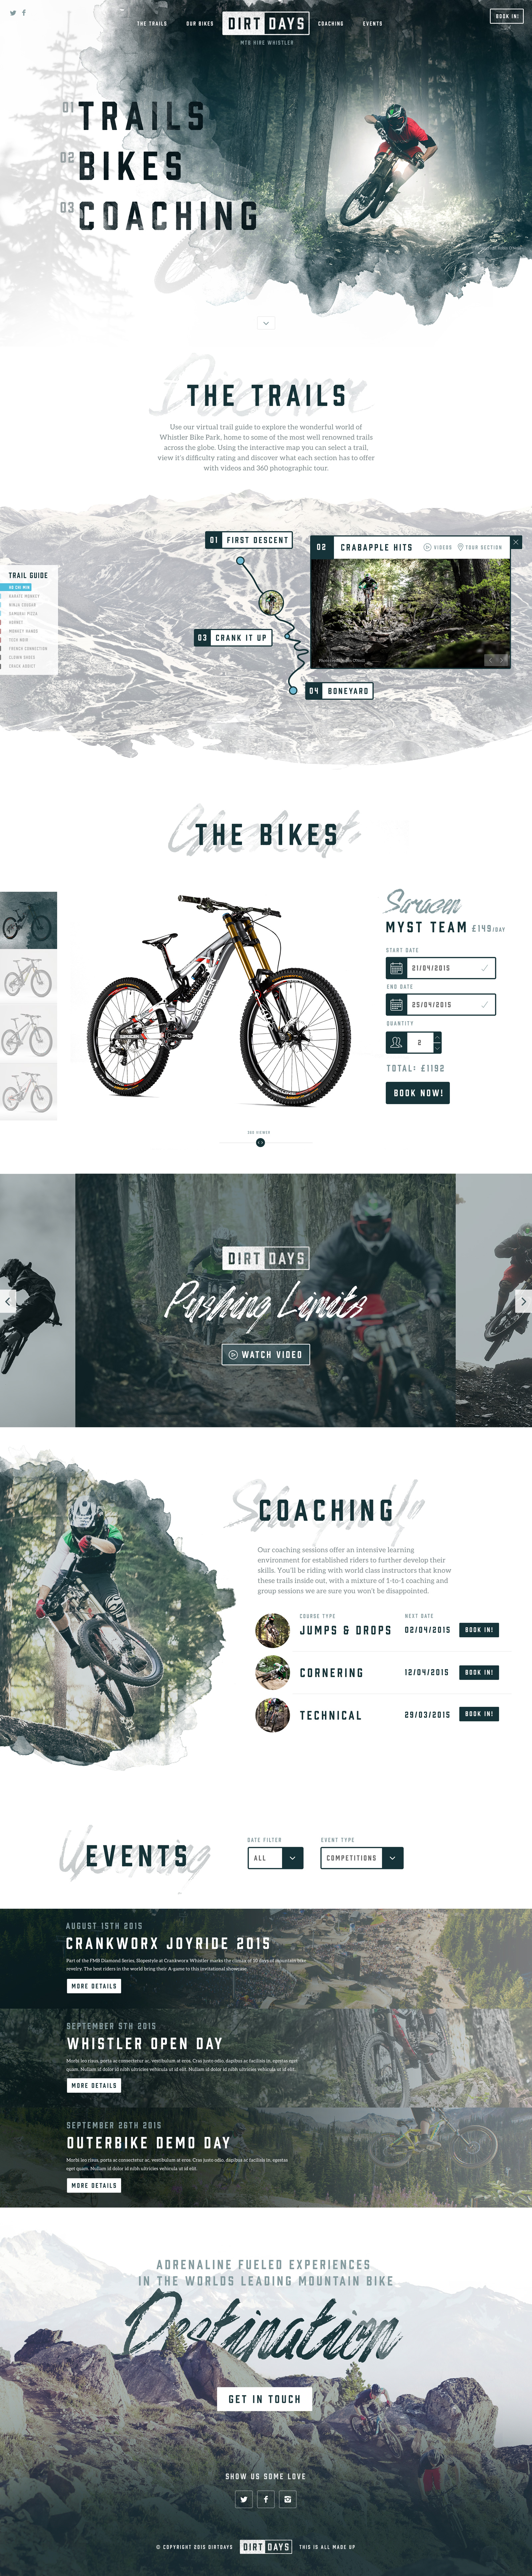 dirtdays_full_concept.jpg by Nathan Riley